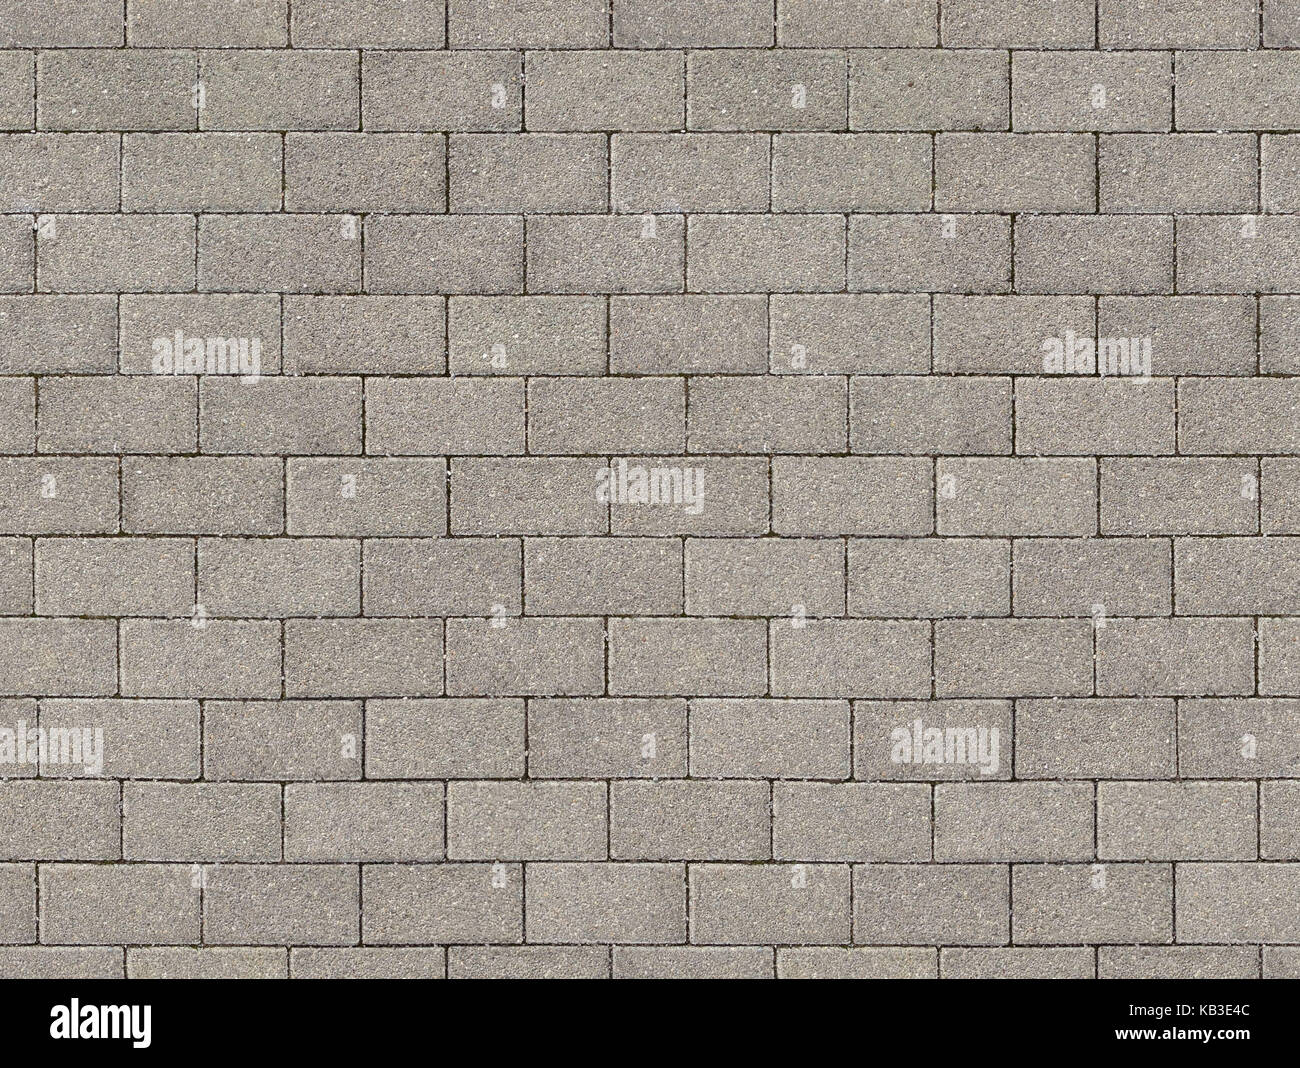 Concrete Paving Slabs Stock Photos & Concrete Paving Slabs